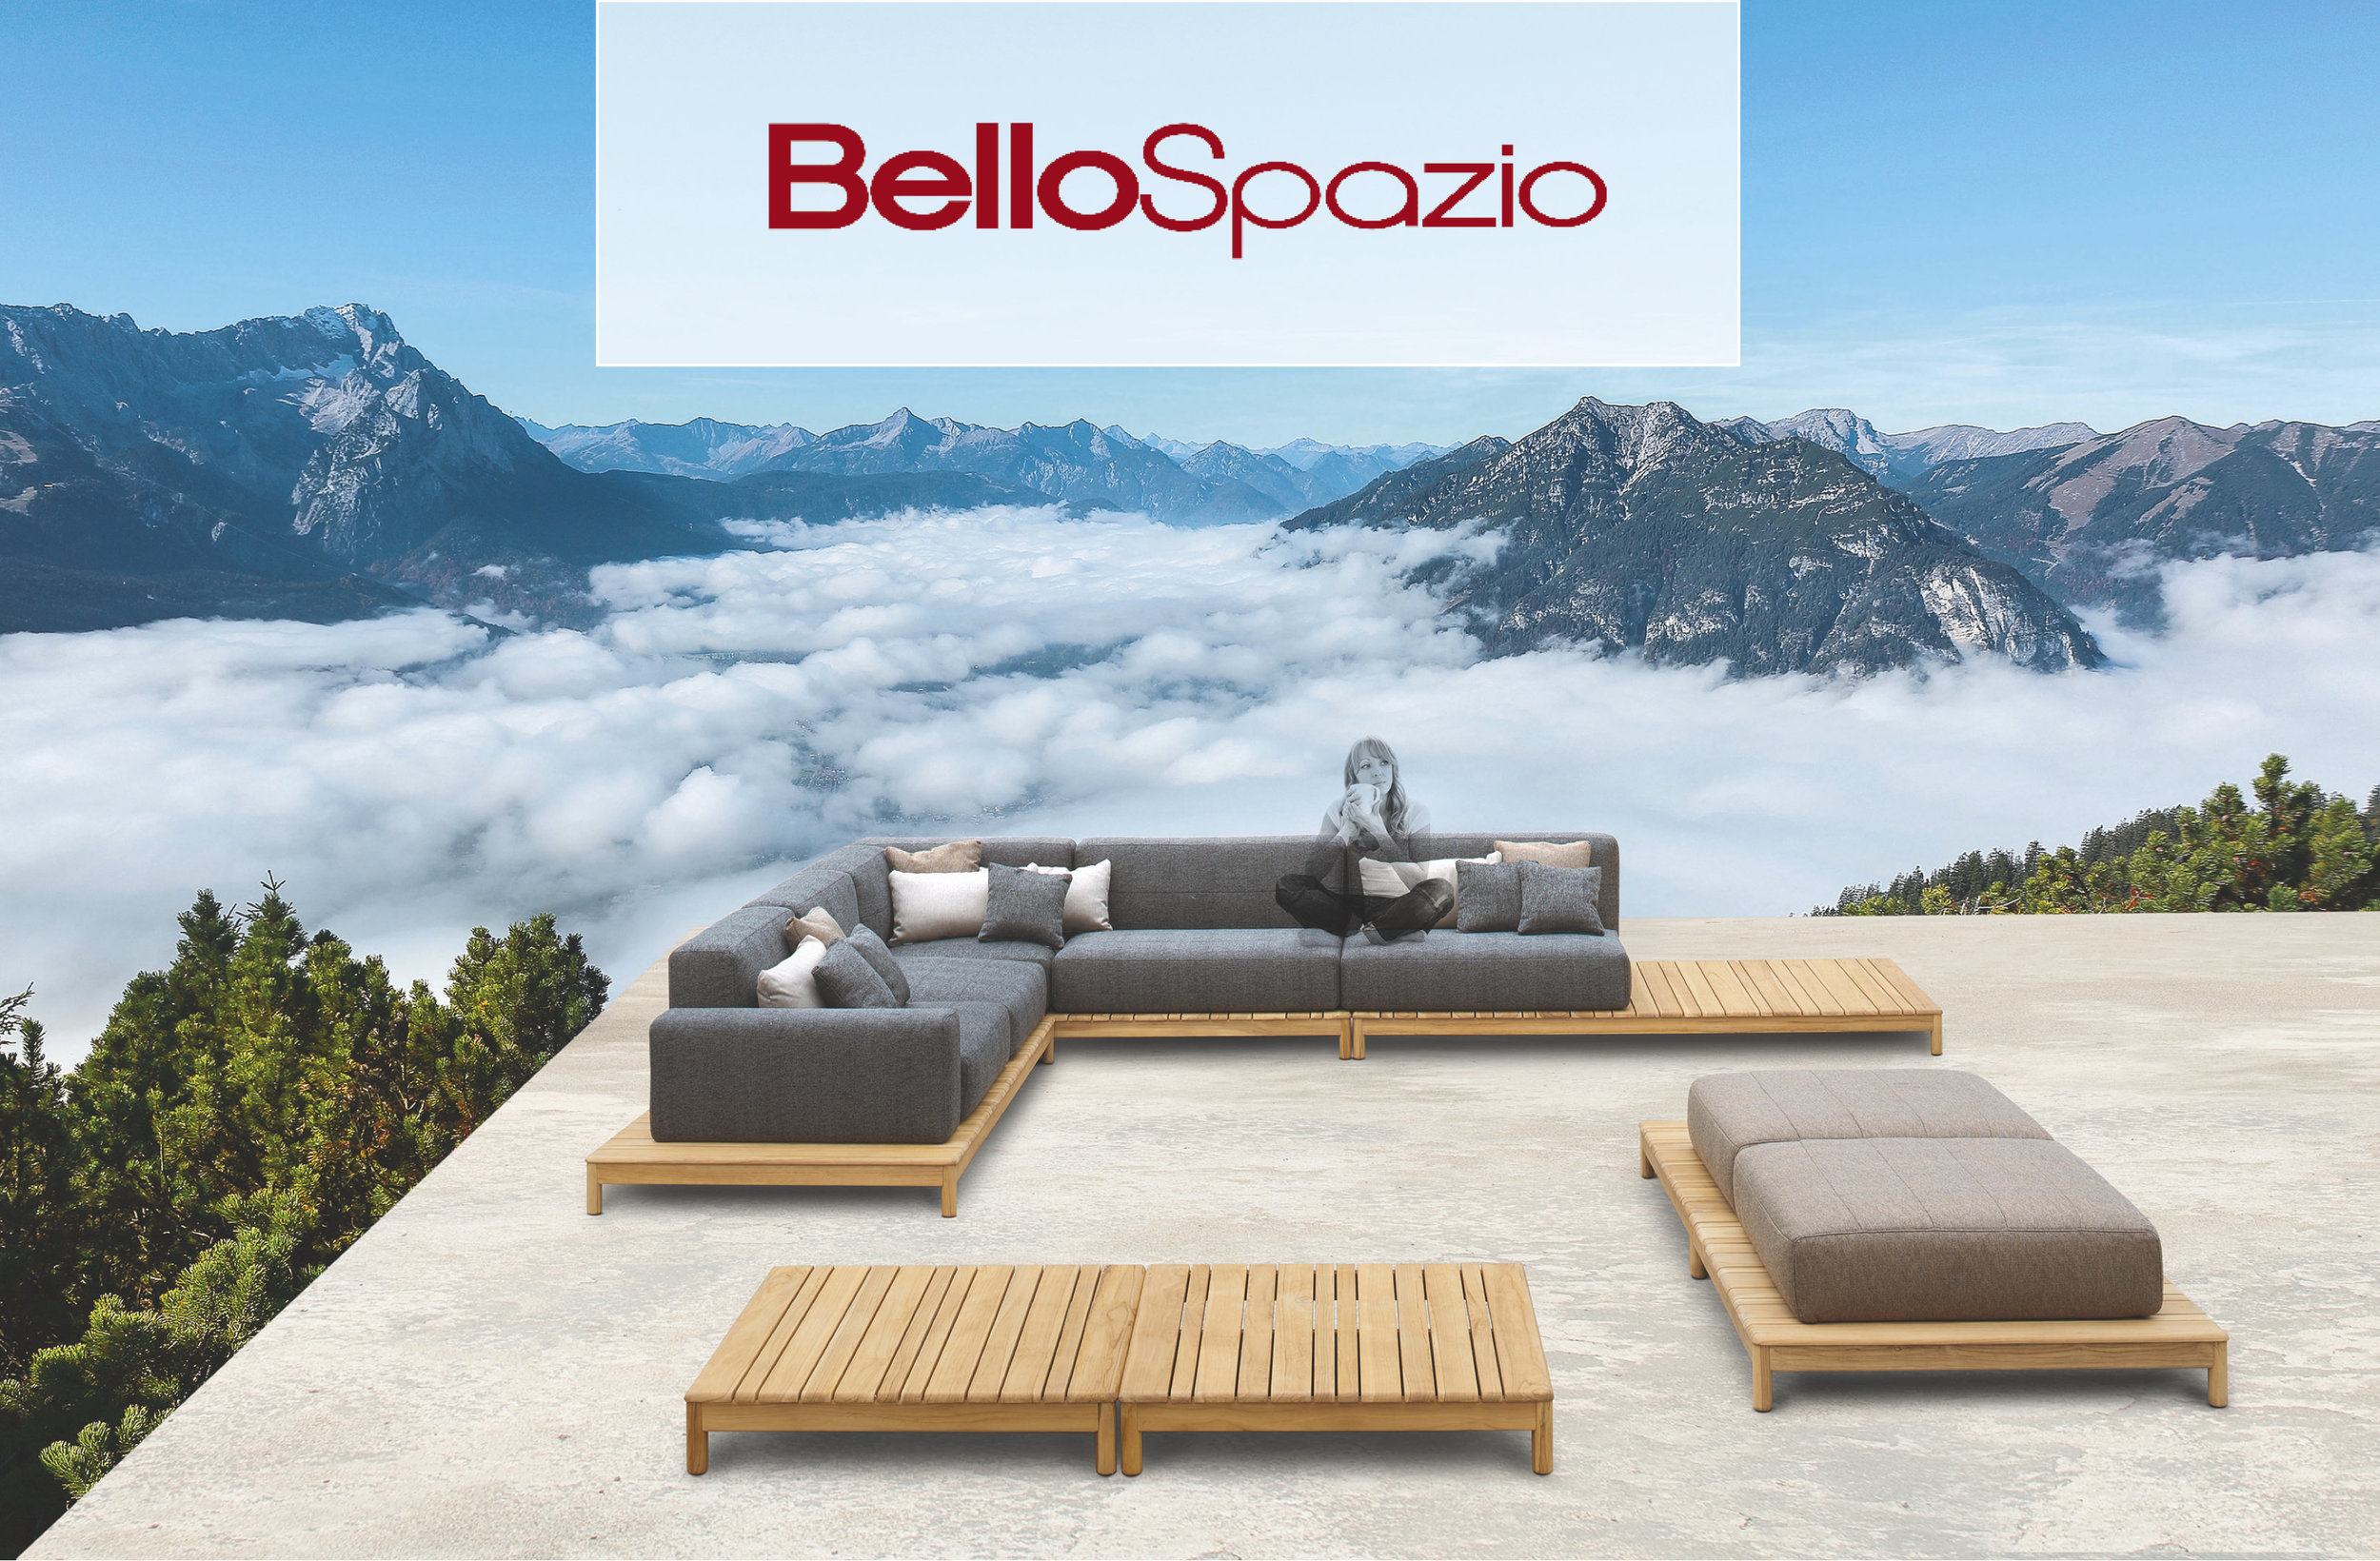 Outdoor Sofas and ottomans